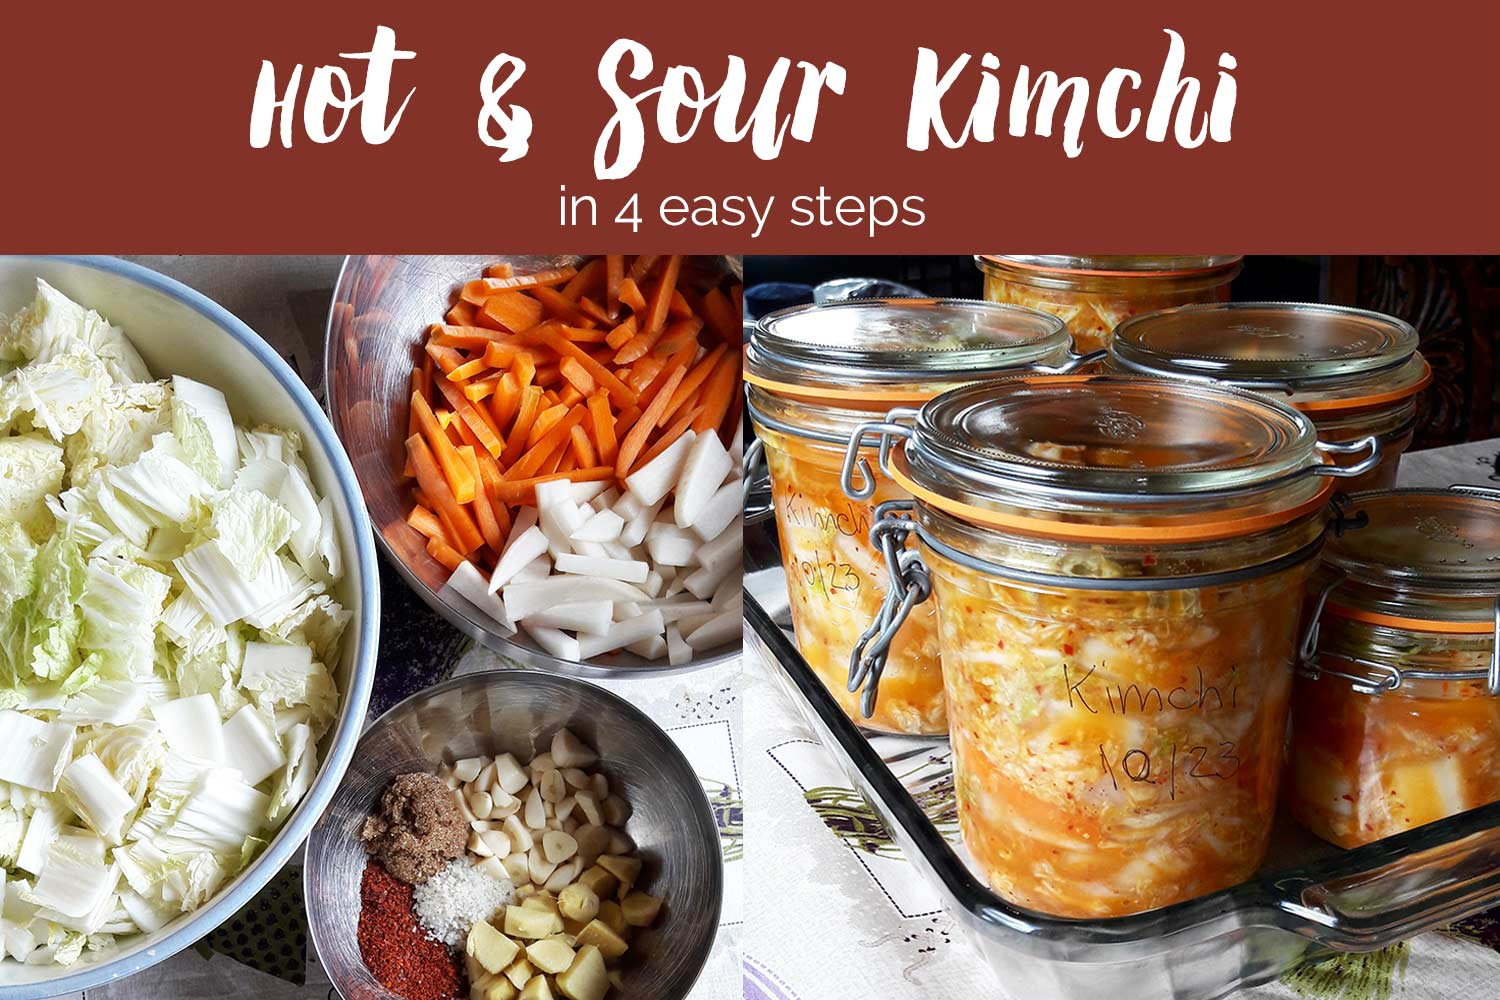 Purely Pacha's Hot and Sour Kimchi in 4 easy steps by Purely Pacha